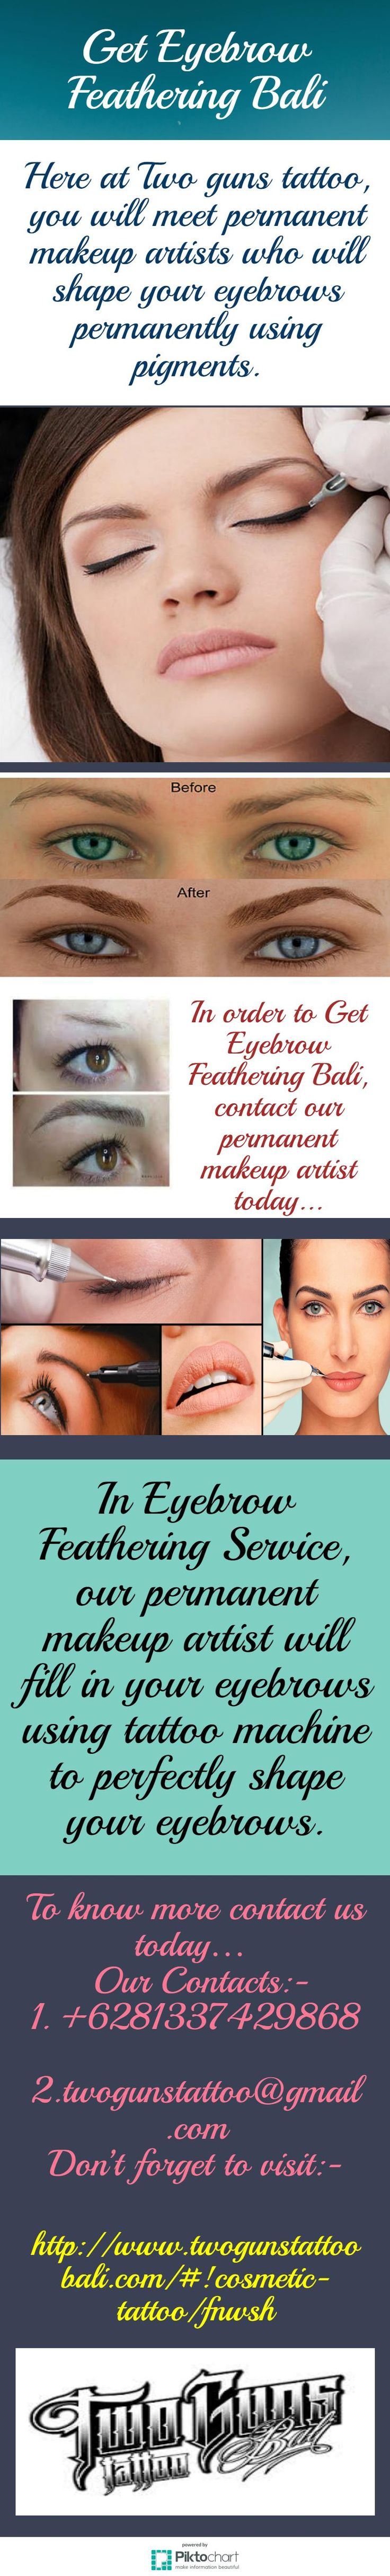 In Eyebrow Feathering Service, our permanent makeup artists will apply pigment to eyebrows which will completely fill in brows. In order to Get Eyebrow Feathering Bali, call us today. see more at: http://www.twogunstattoobali.com/#!cosmetic-tattoo/fnwsh